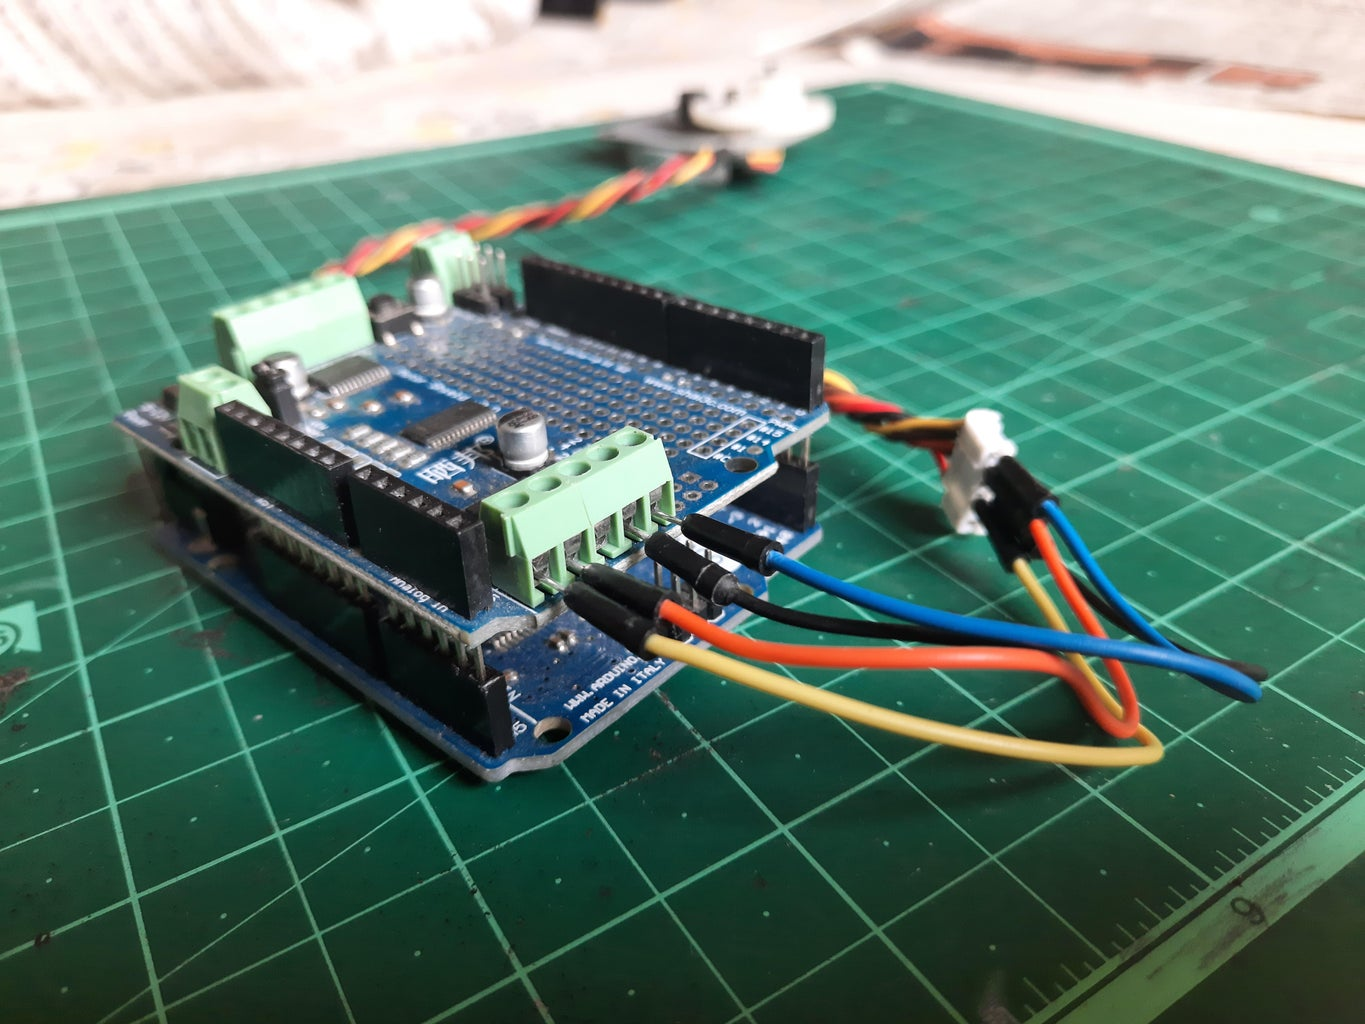 Connect the Stepper Motor to the Motor Shield